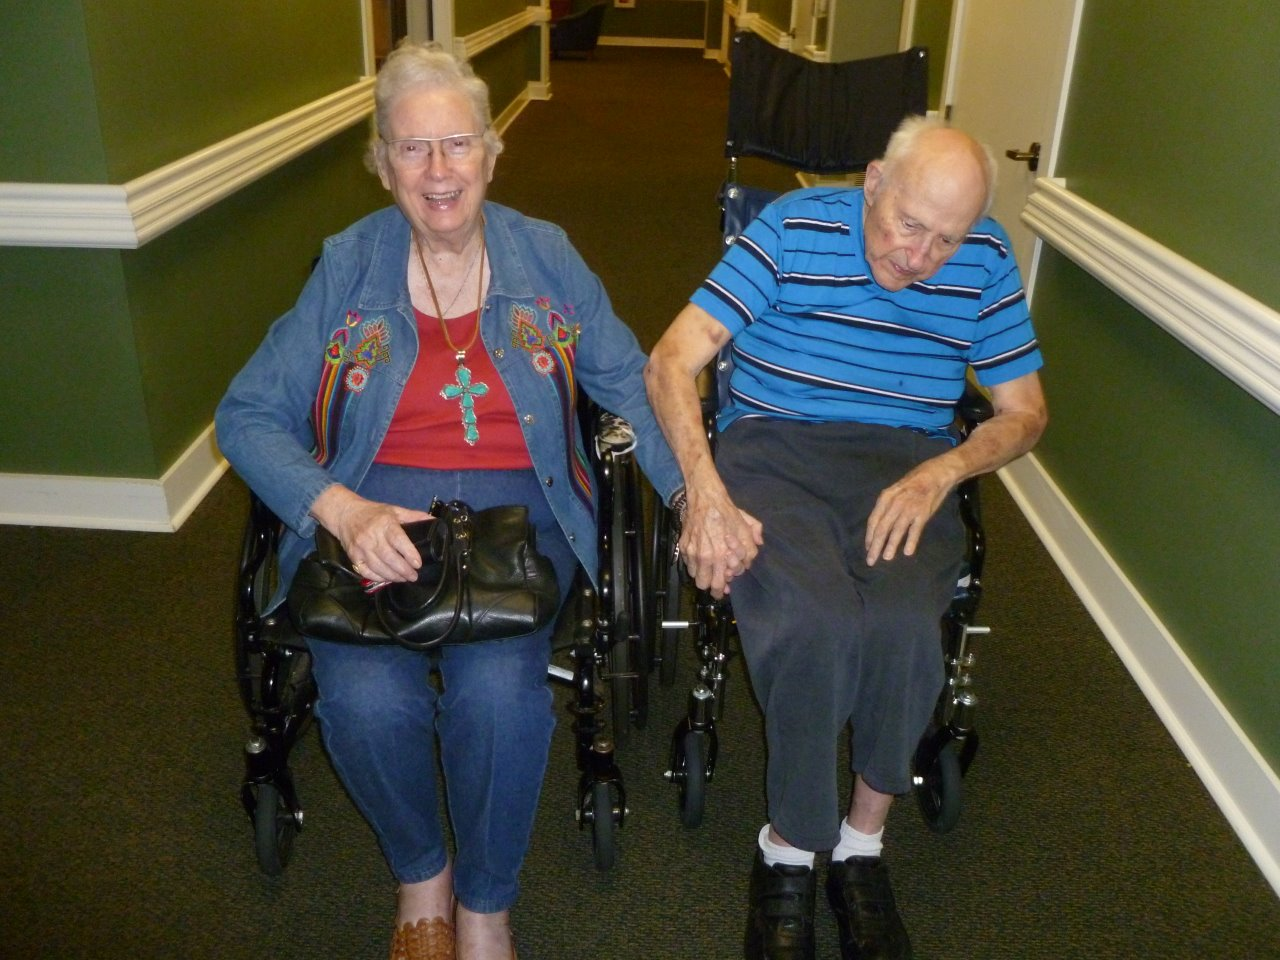 Mom and Dad in wheelchairs